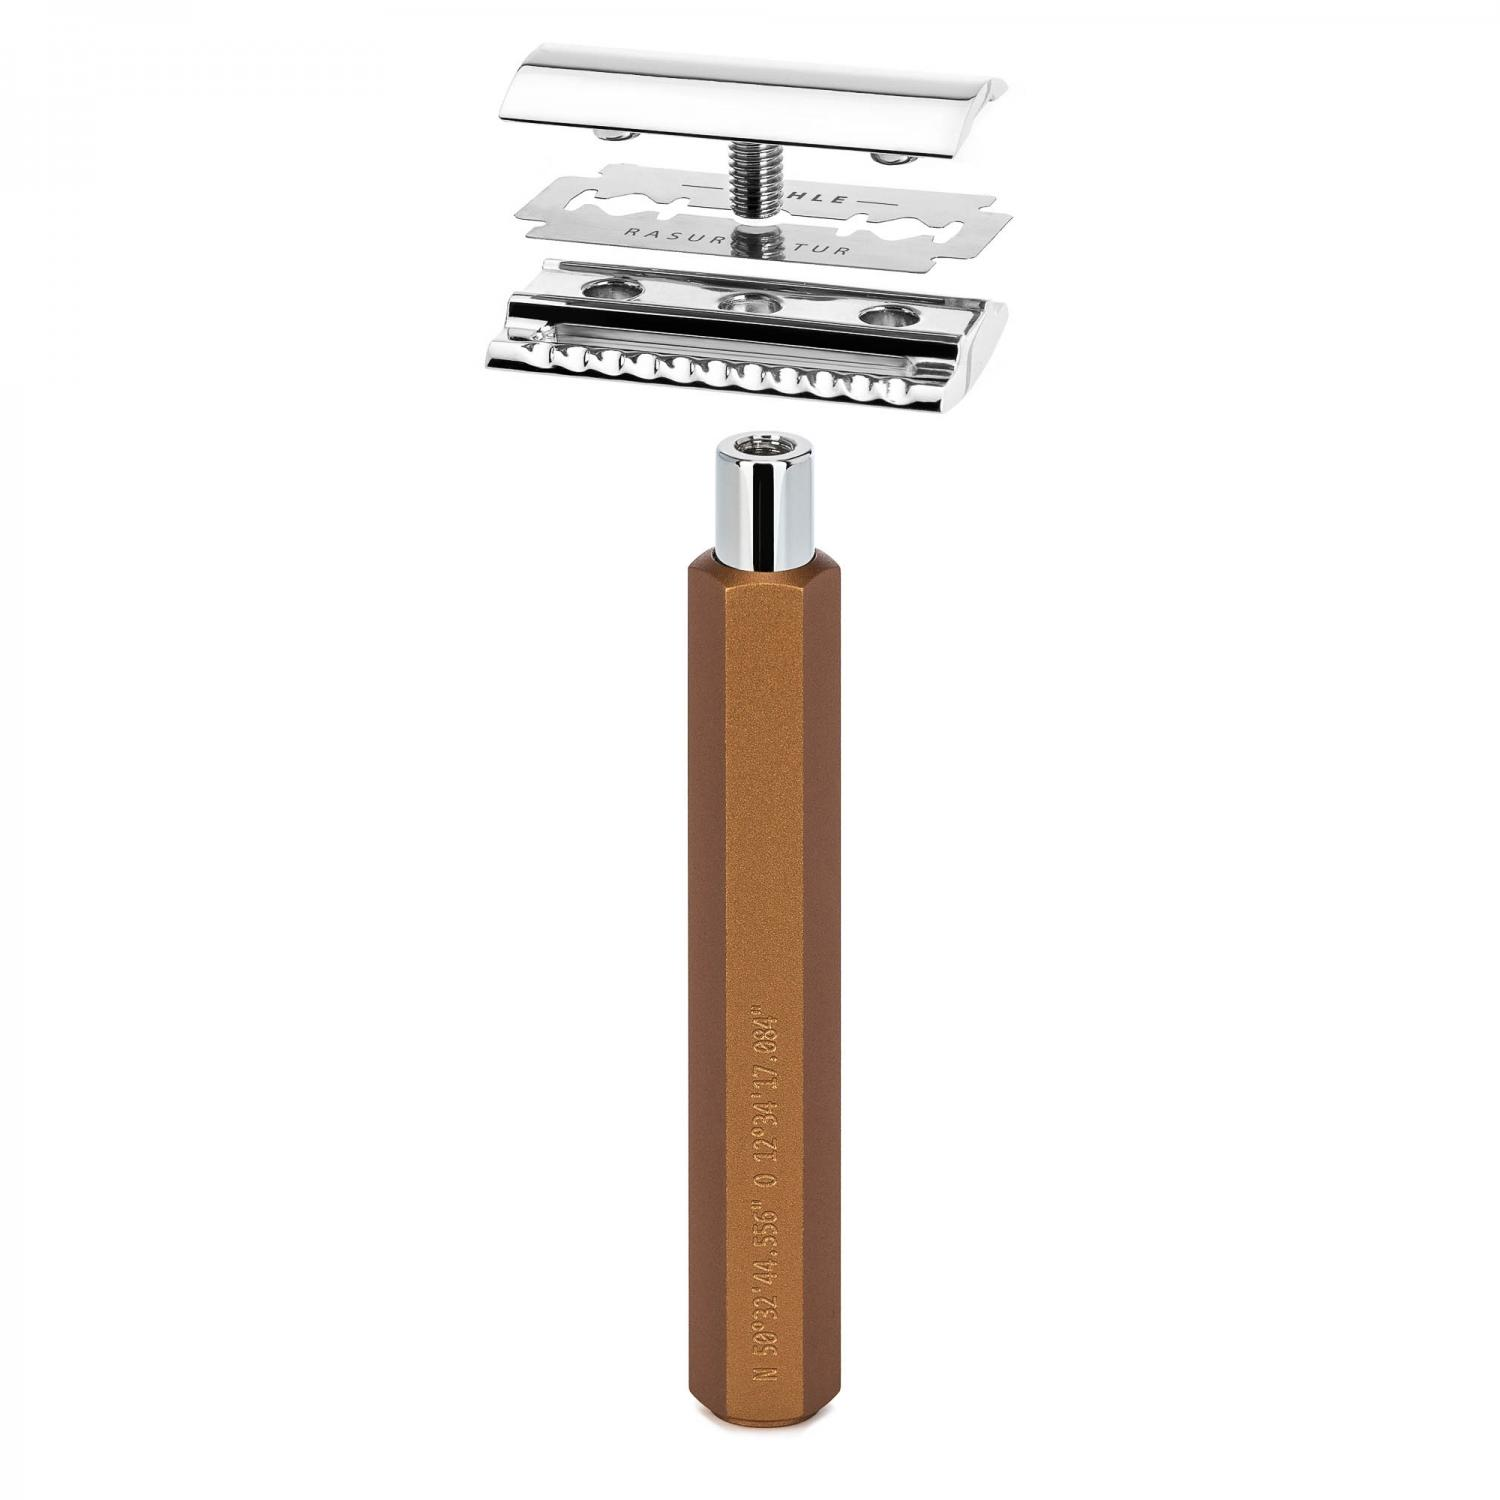 MUHLE HEXAGON Series Bronze Safety razor